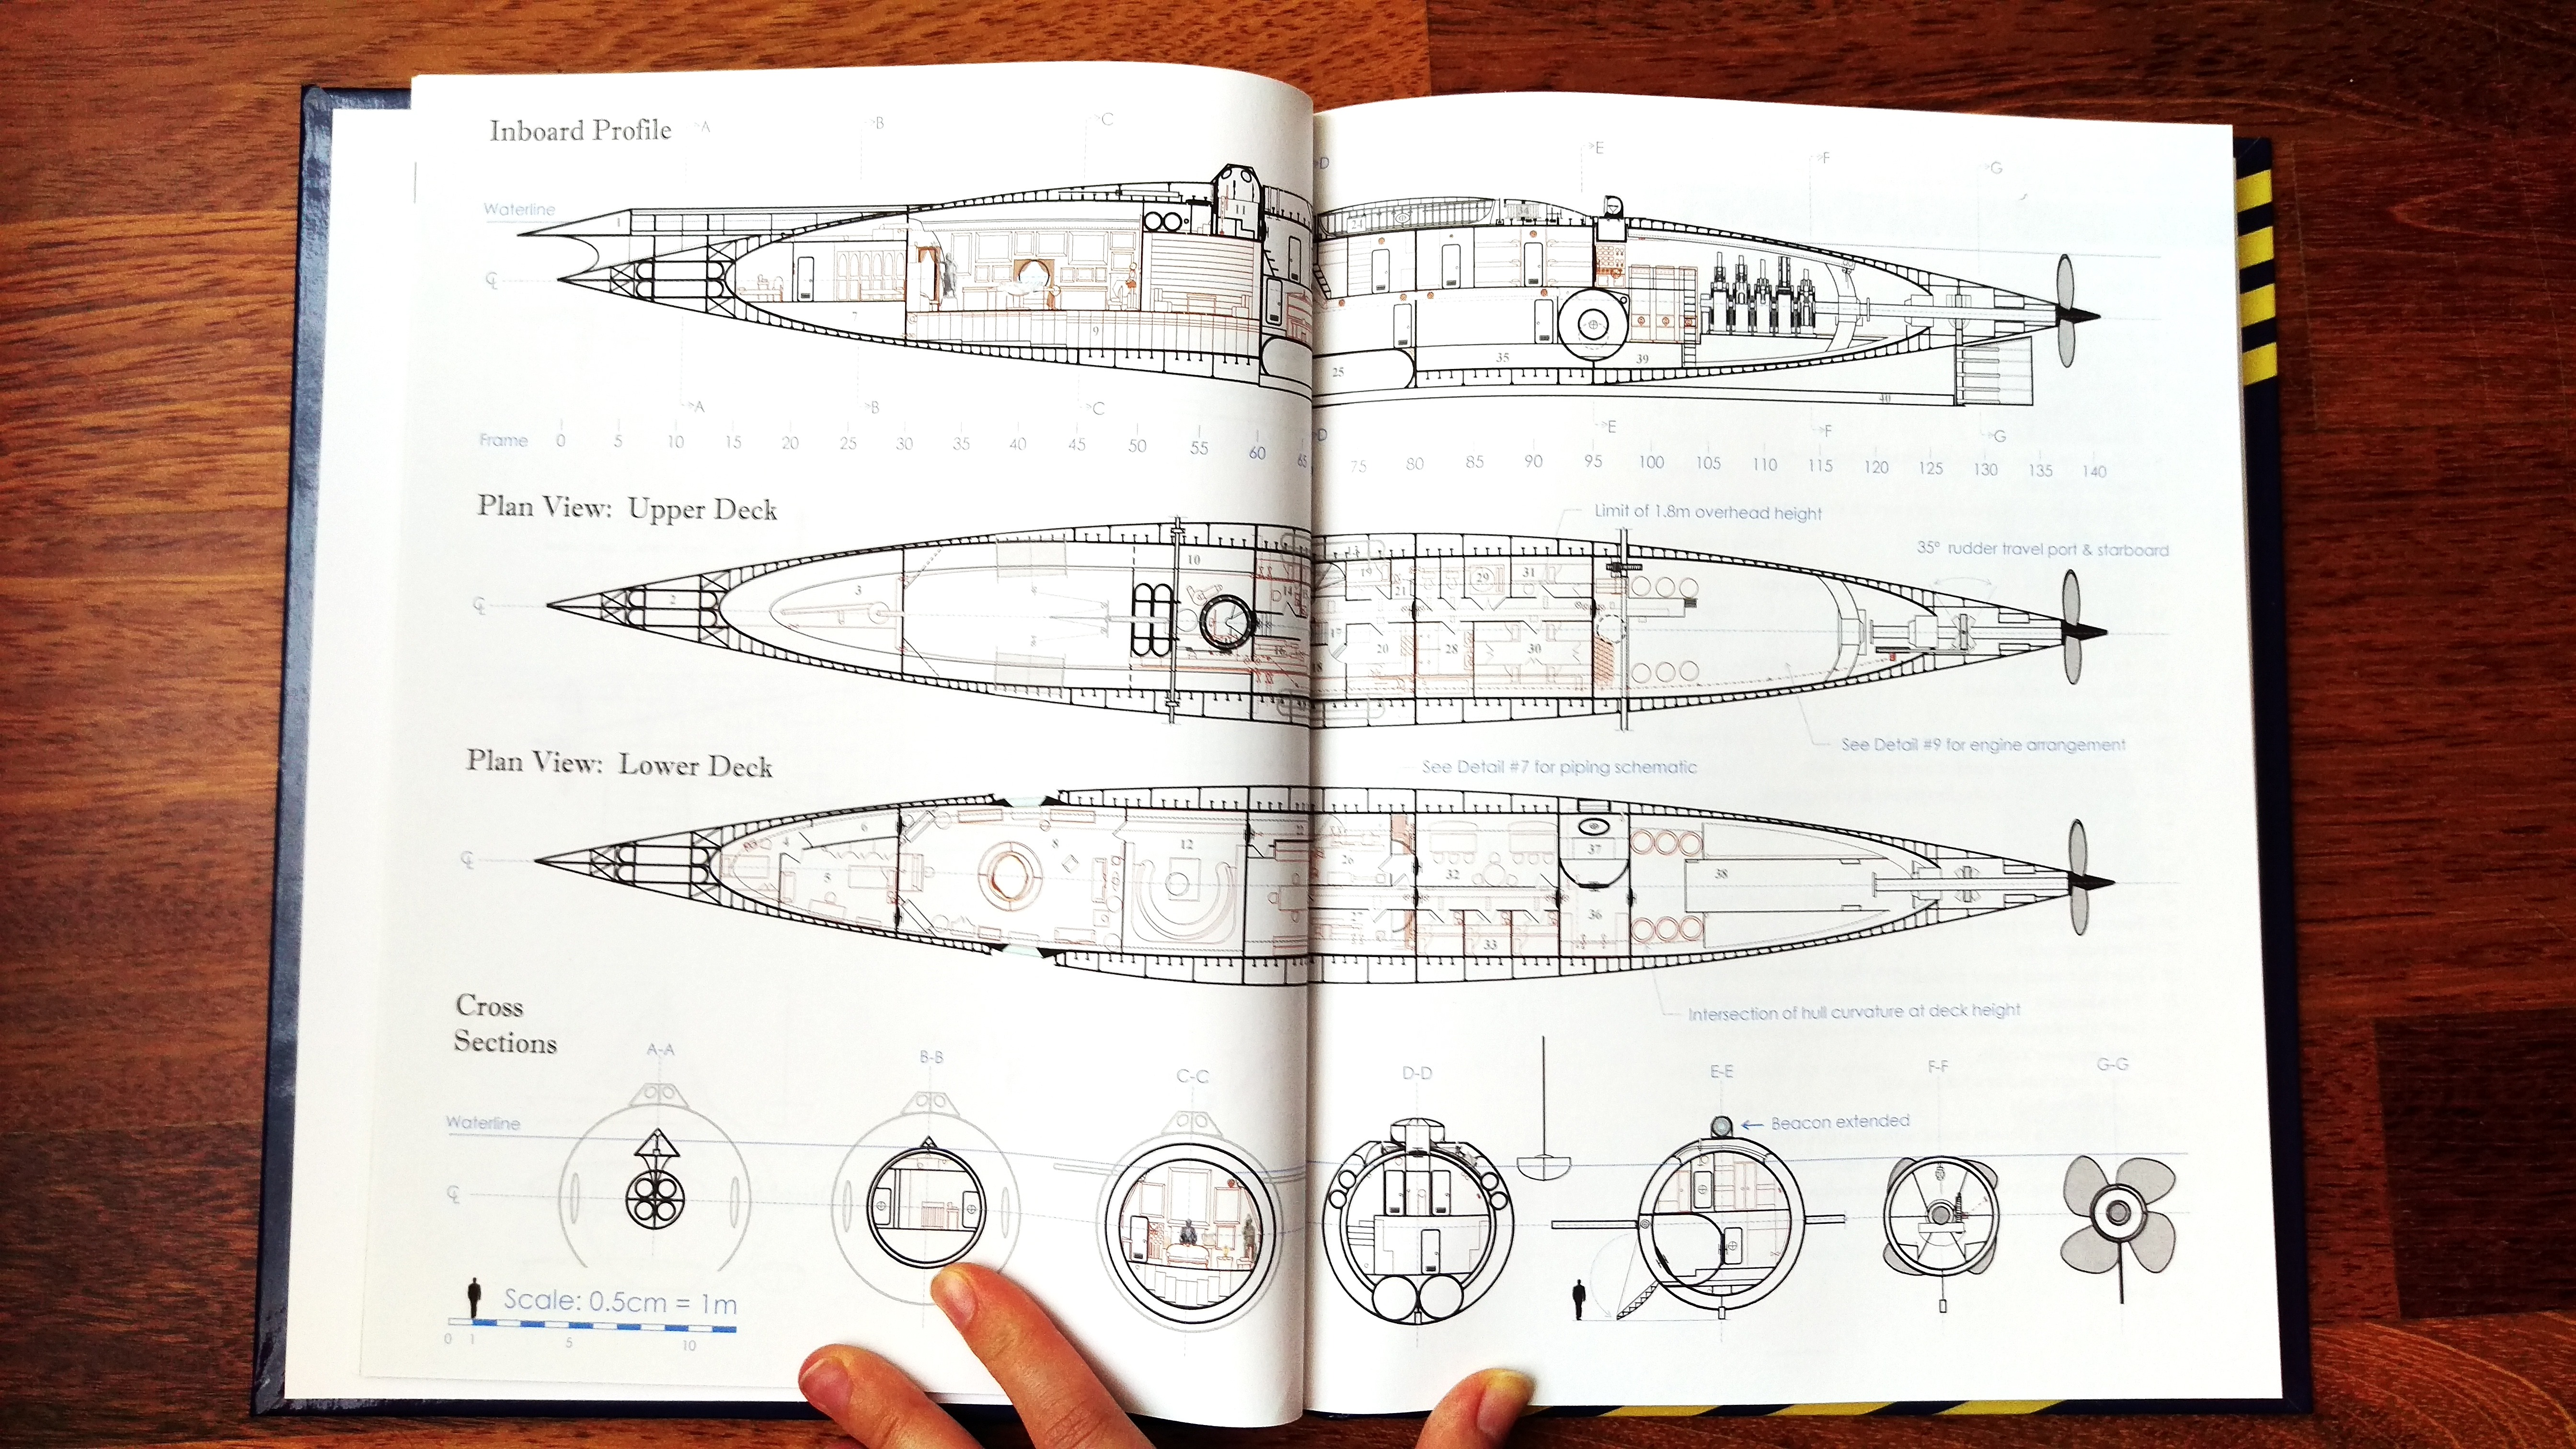 A blueprint of the various levels of the Nautilus